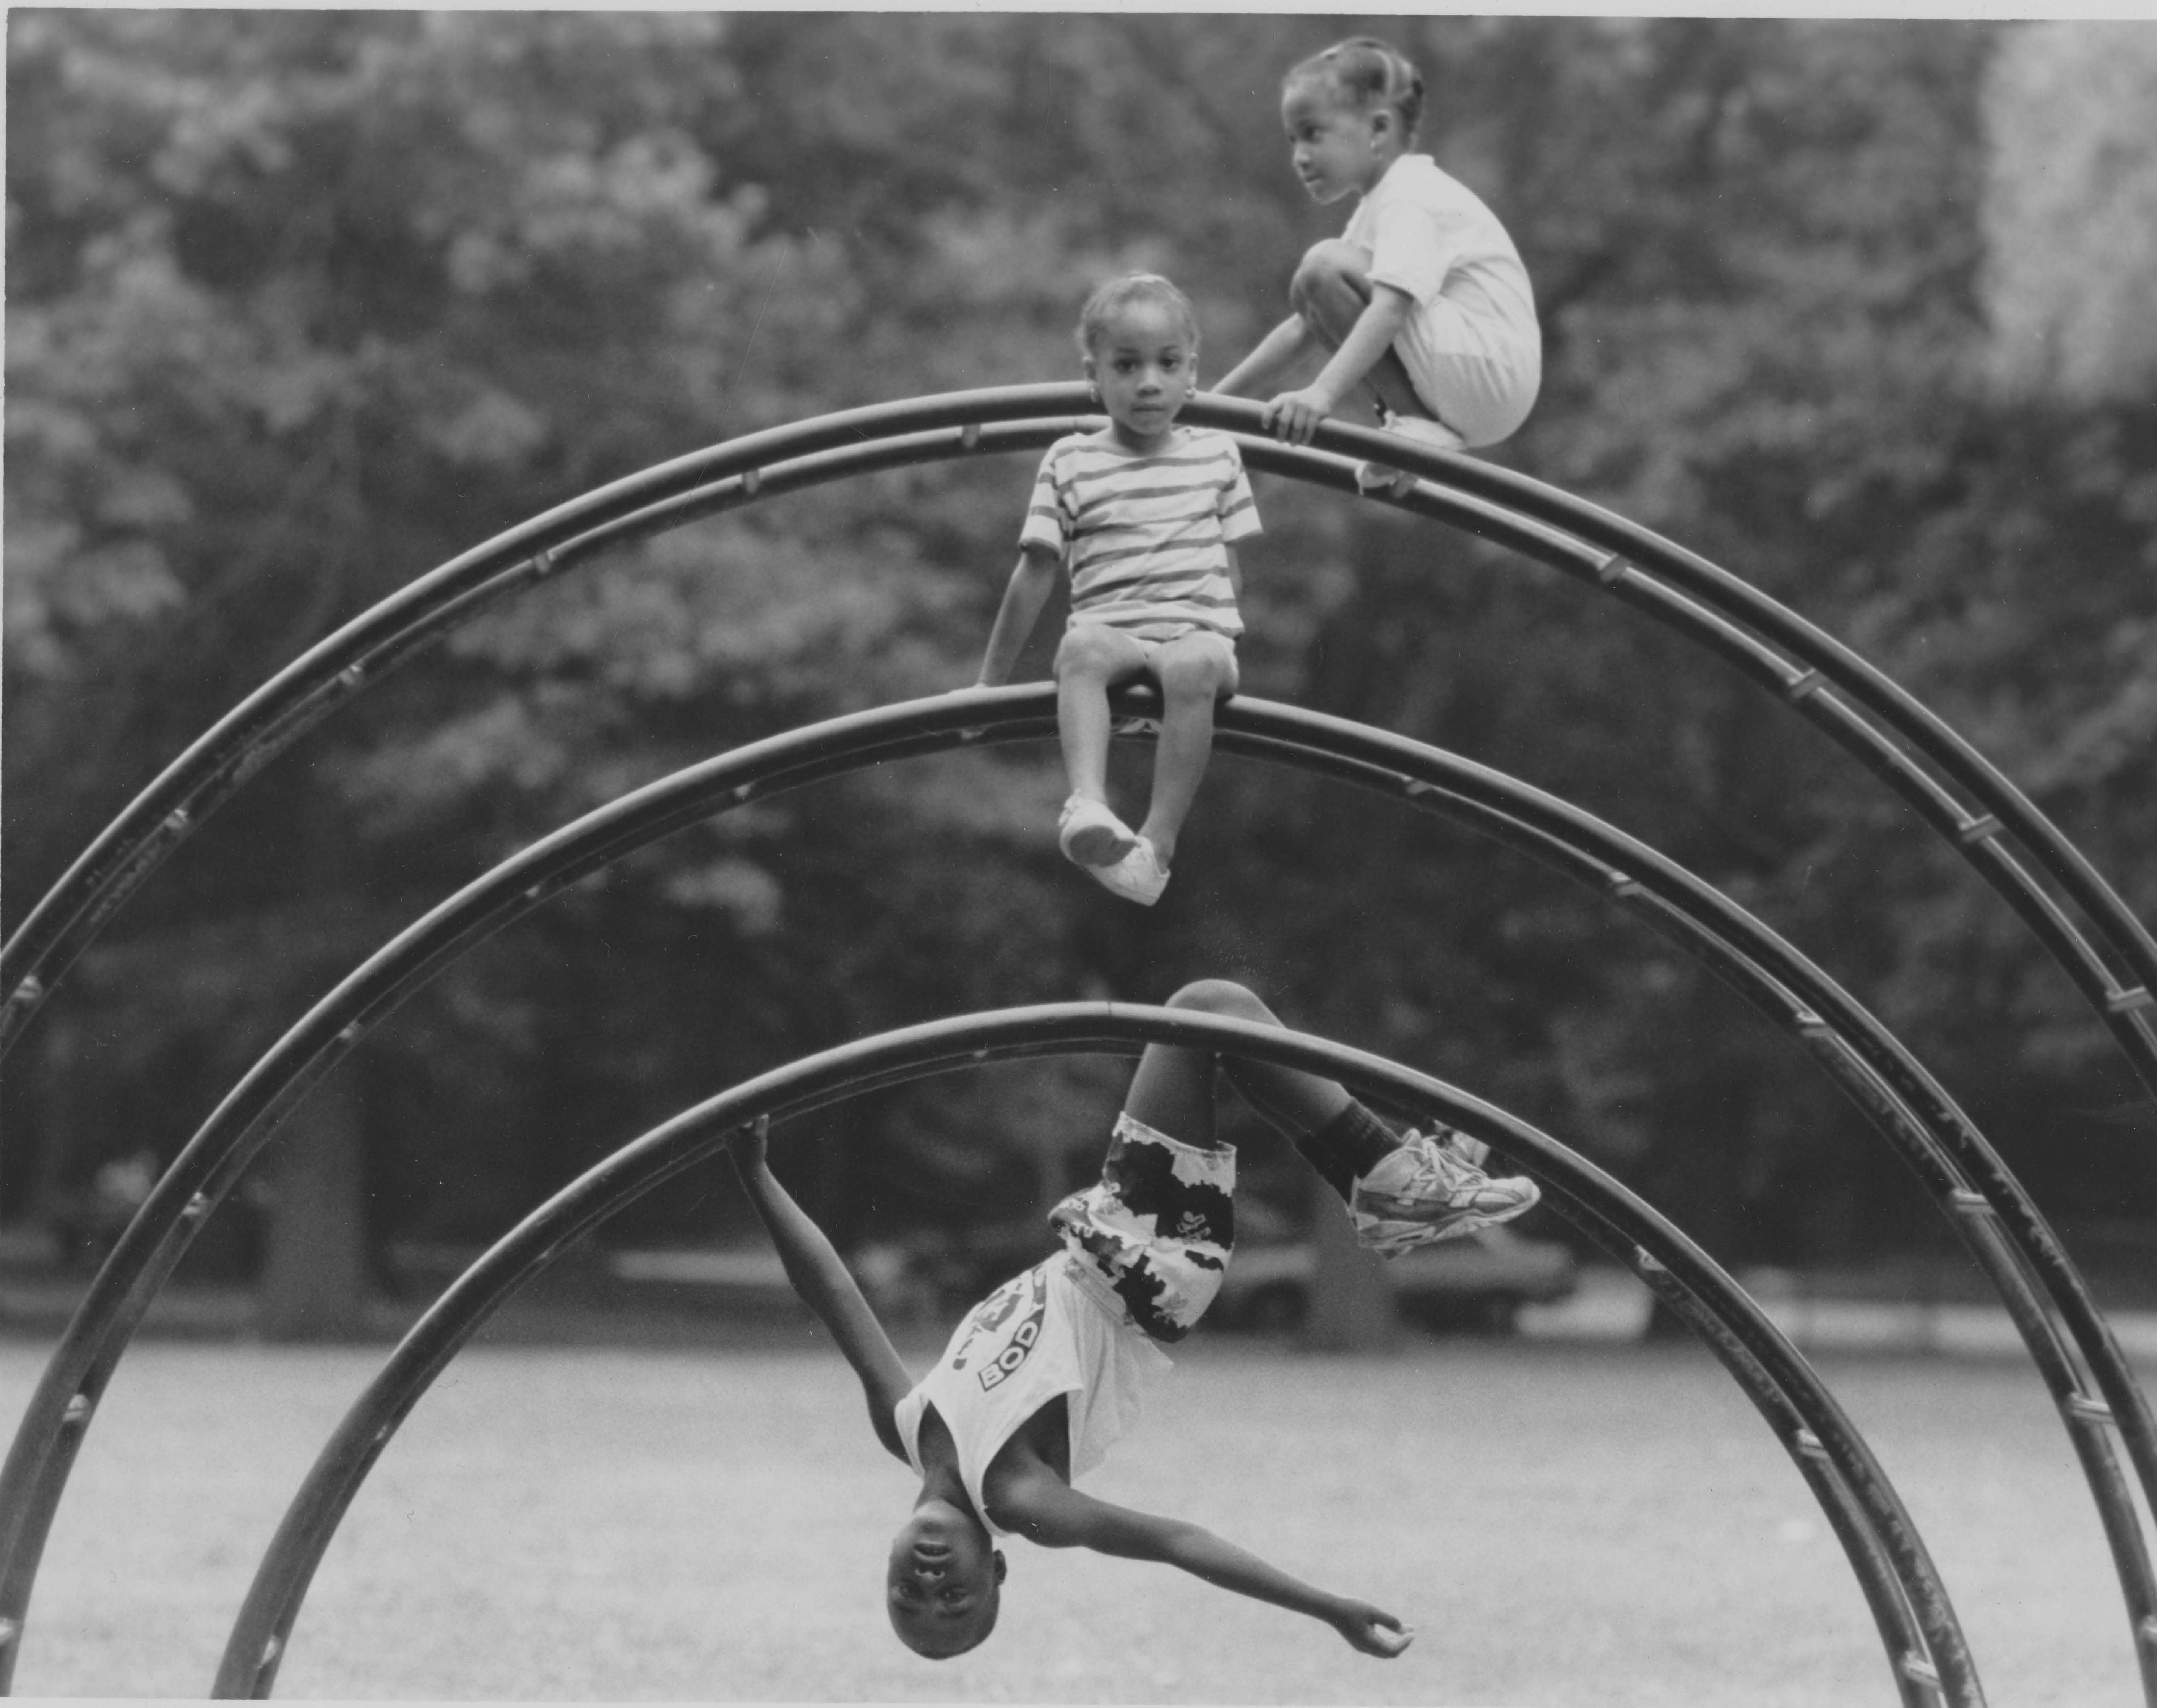 Children on jungle gym at Weequahic Park, 1991019